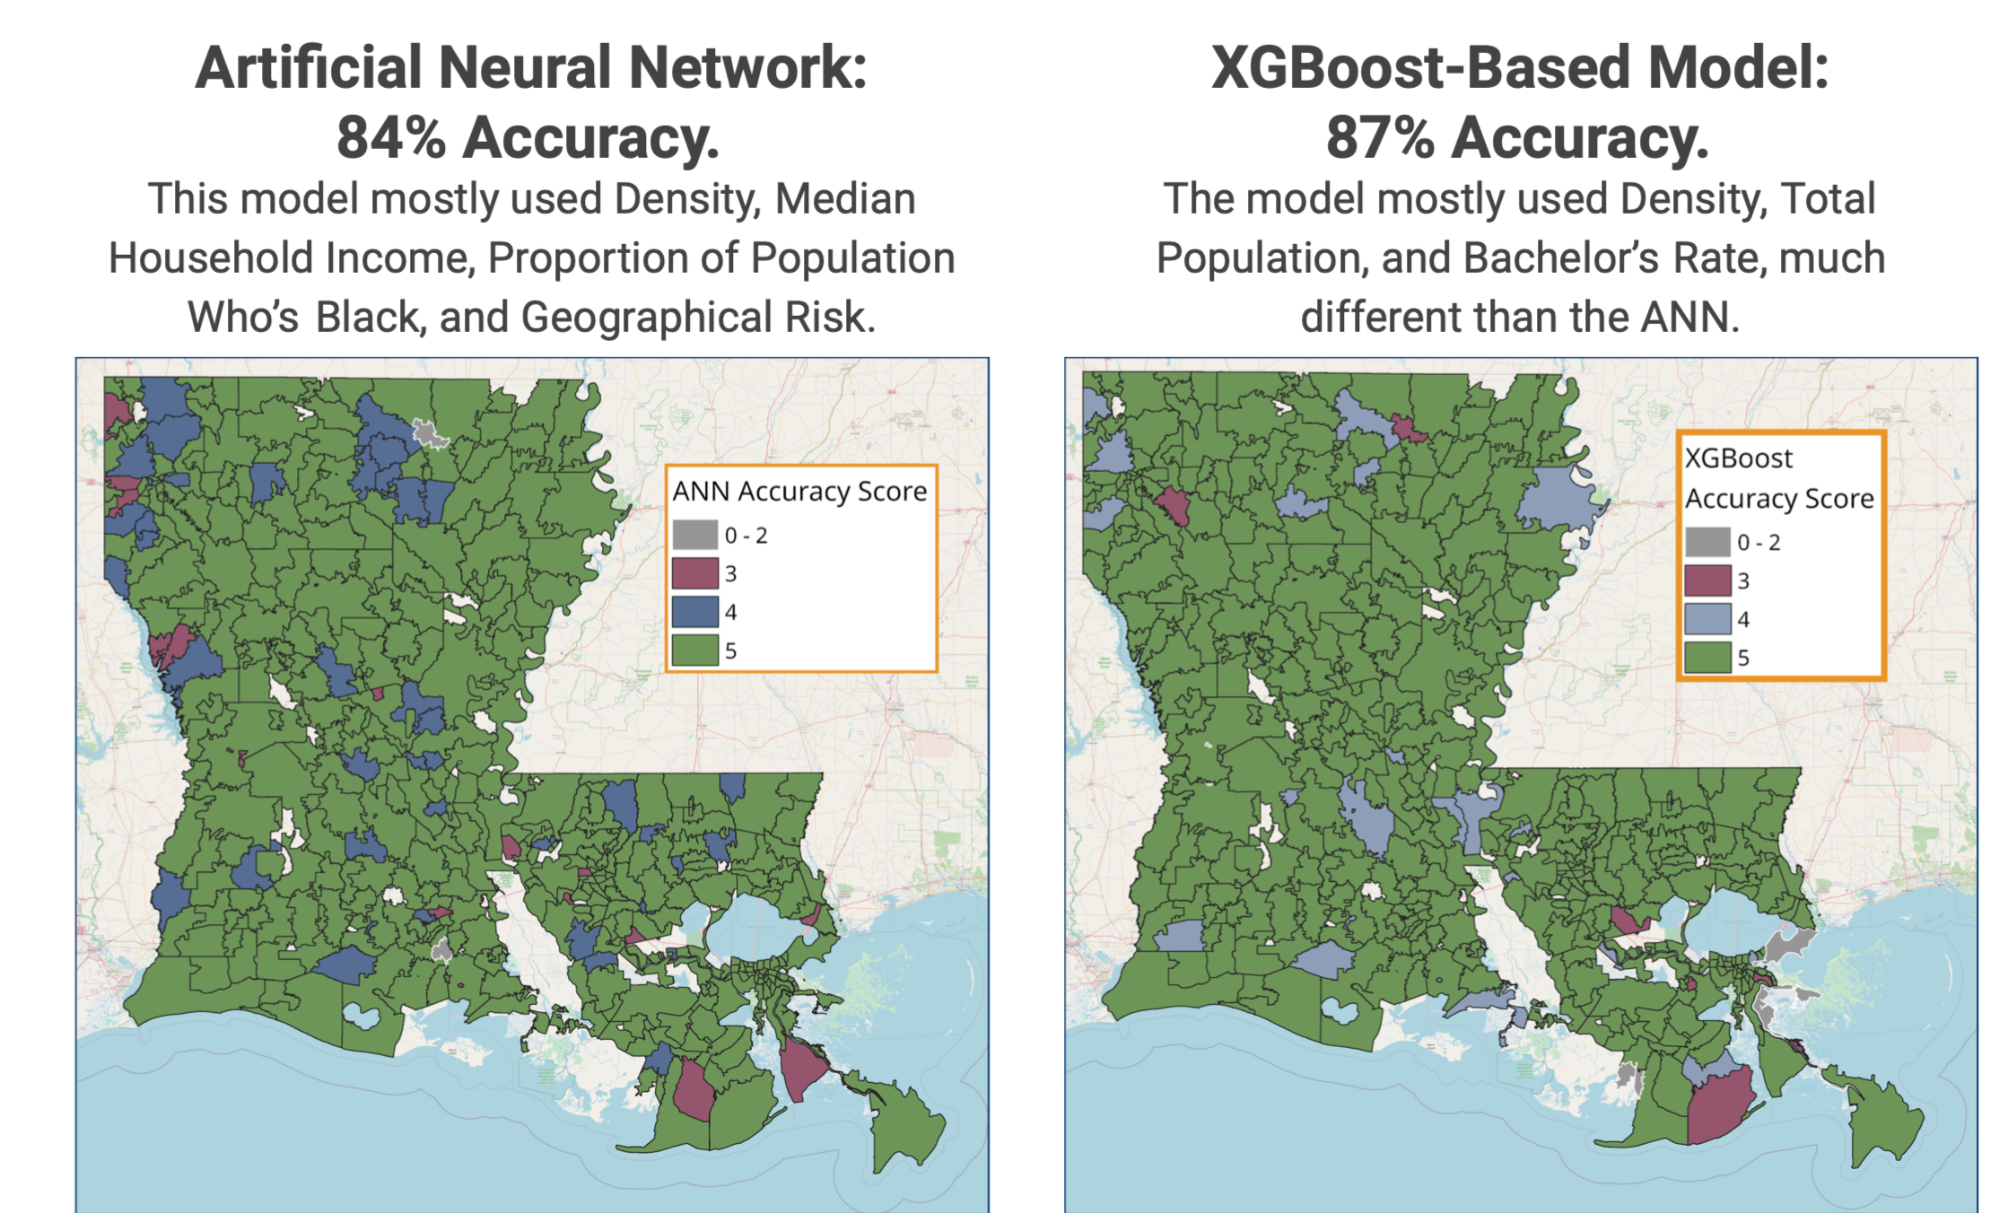 Model Accuracies (XGBoost and Artificial Neural Network)